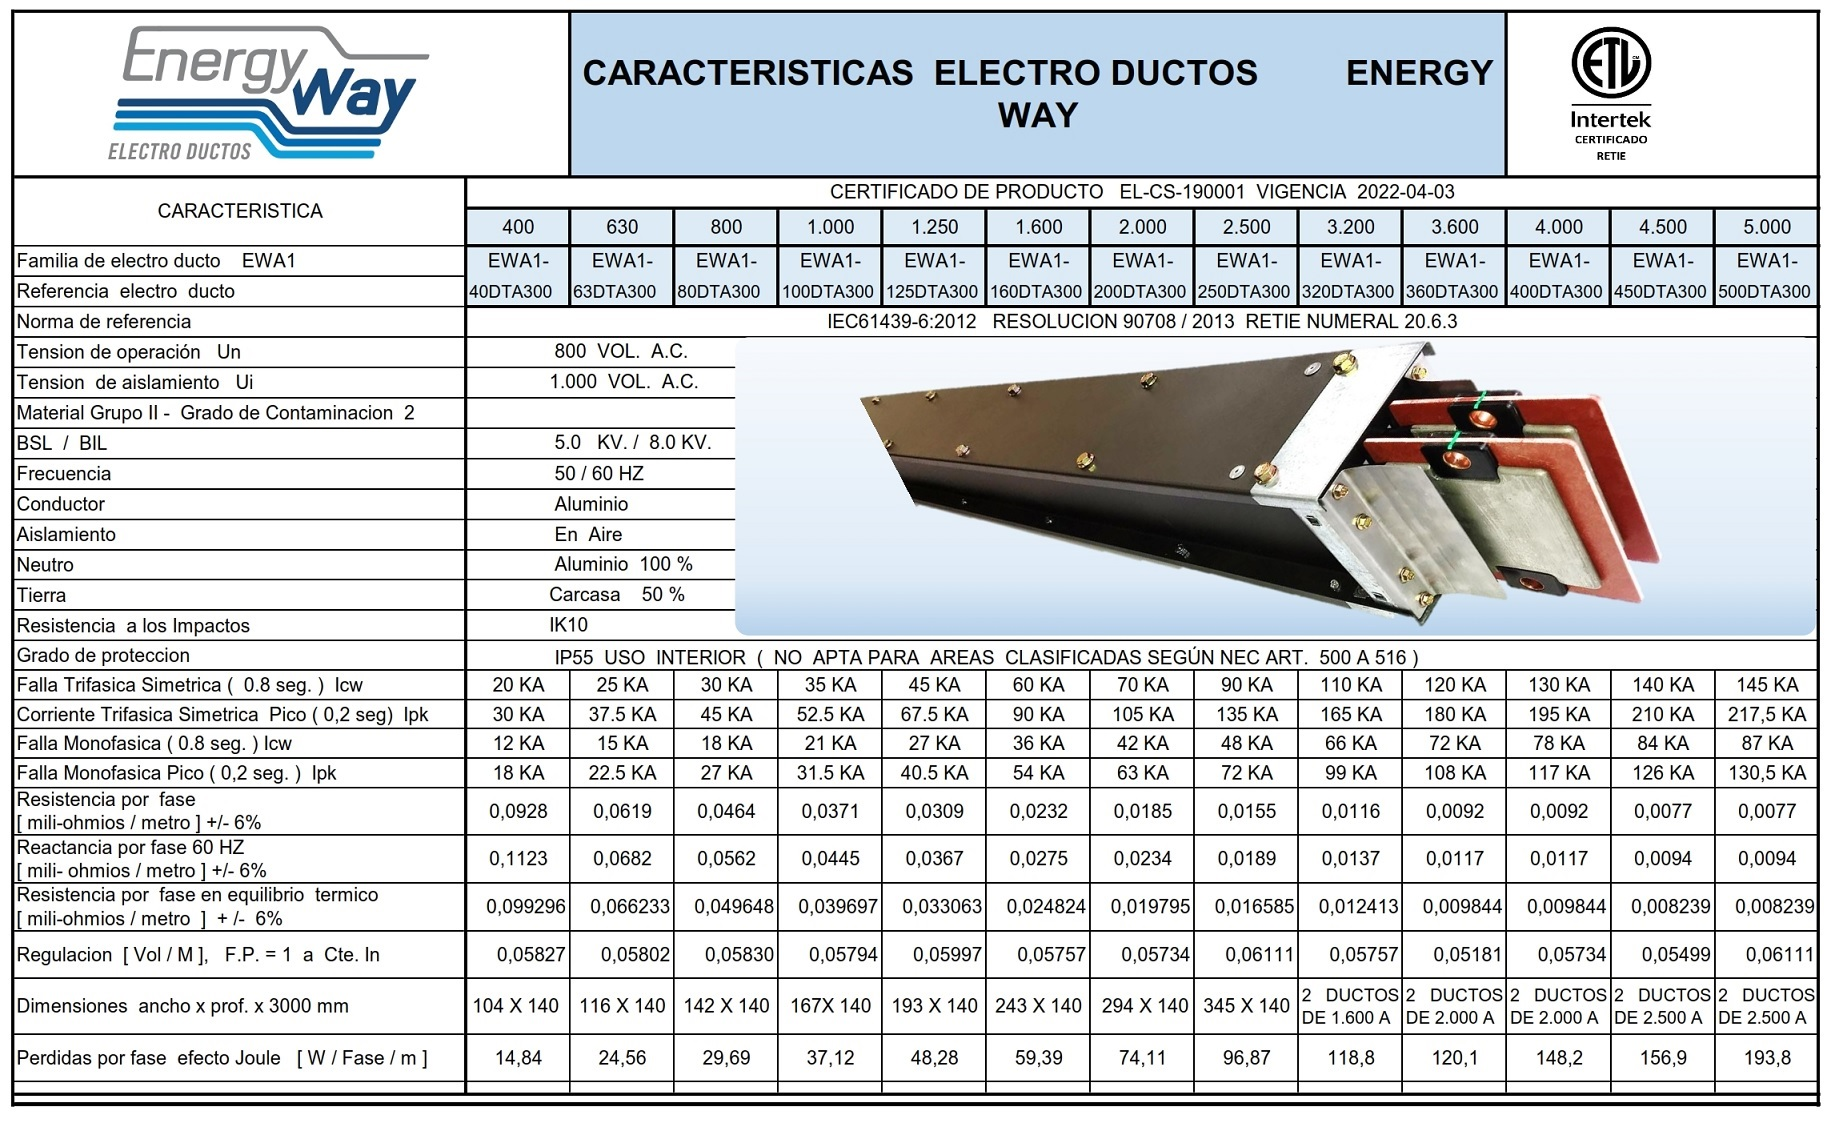 CARACTERISTICAS ELECTRO DUCTO ENERGY WAY MAY 2020- 5000A-1